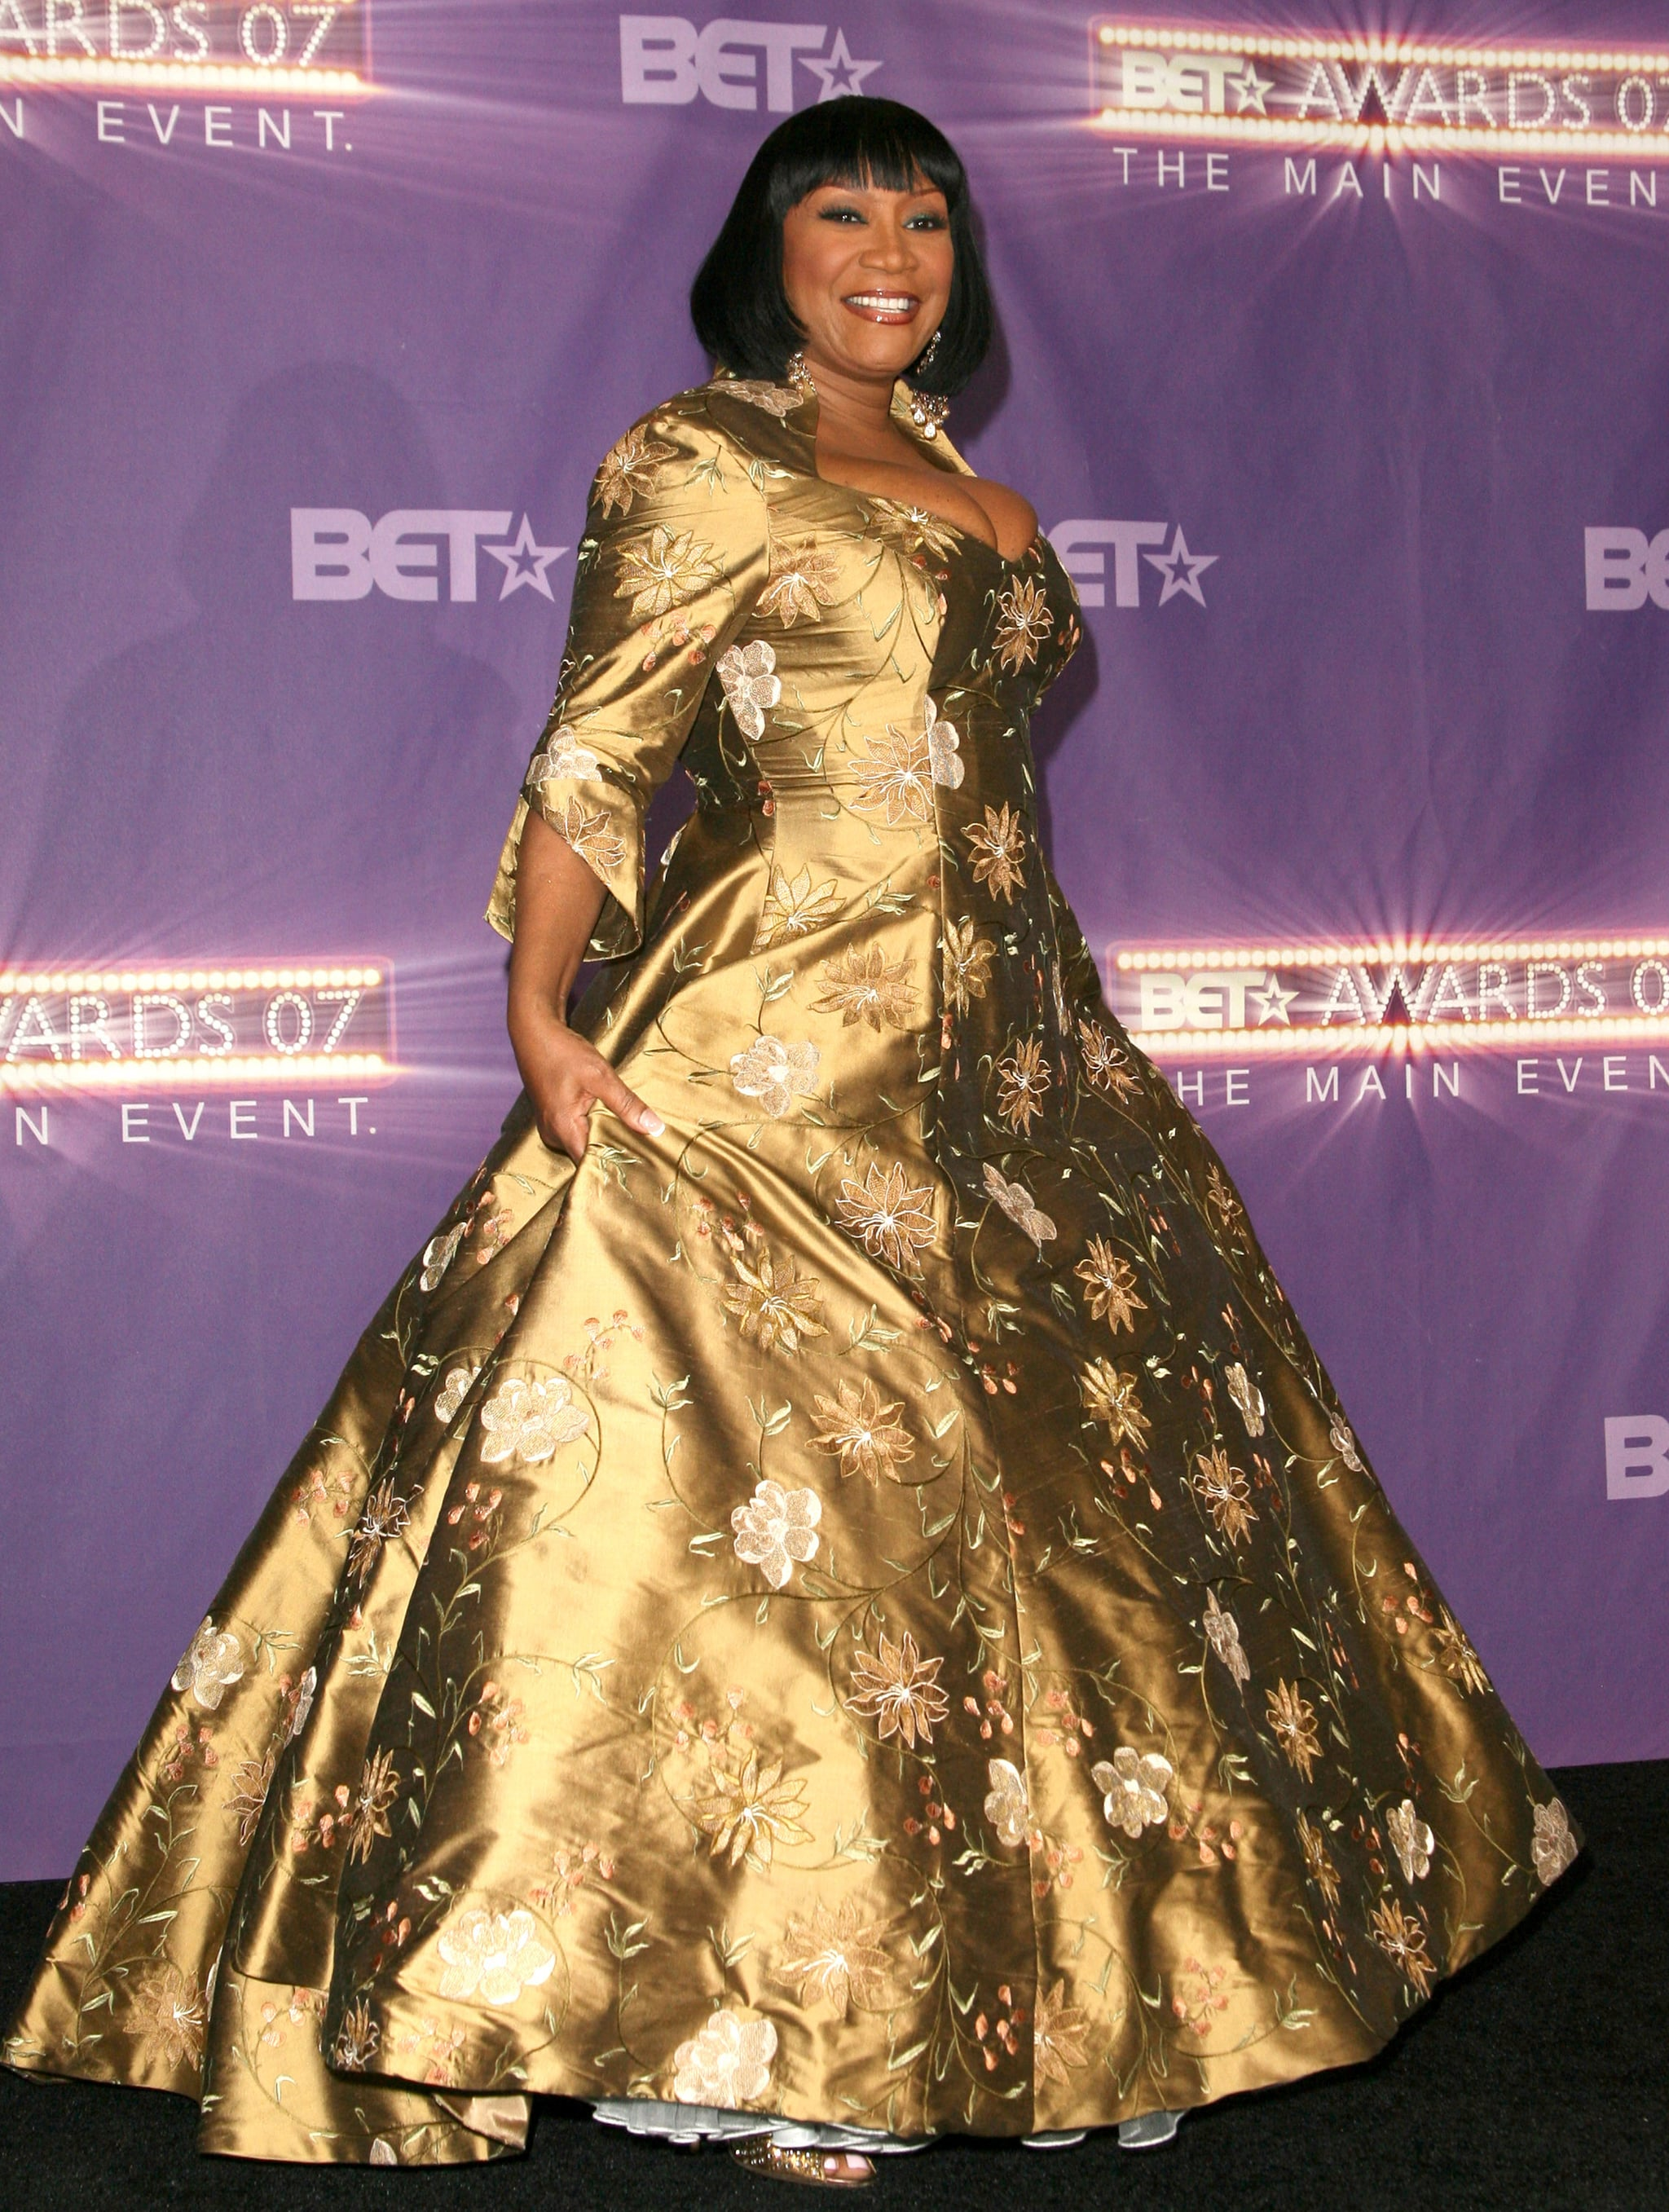 Patti labelle on bet awards 2021 mauro betting esposa del